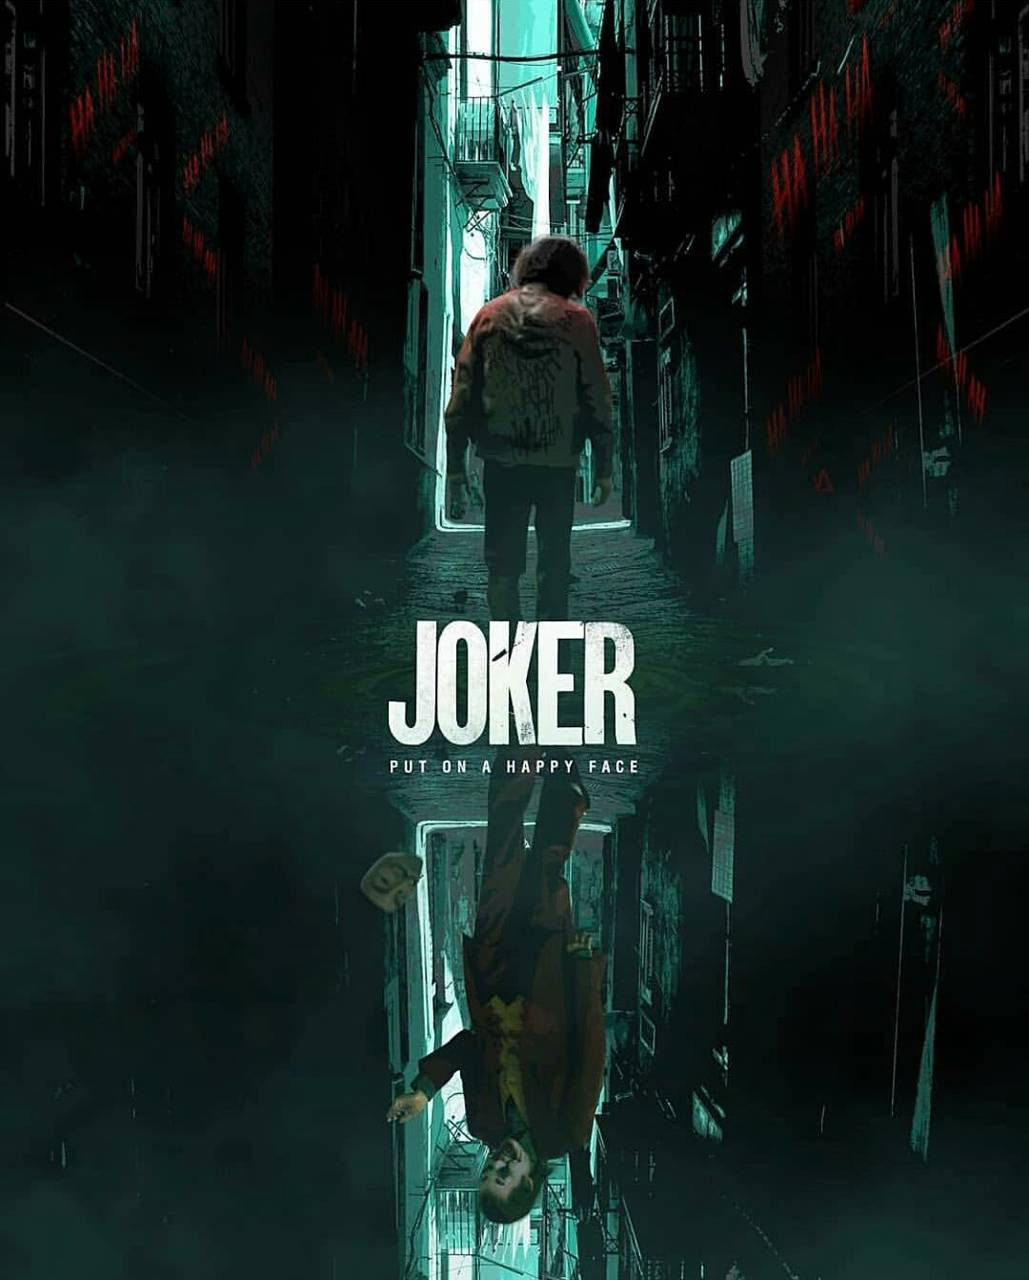 Joker 2019 Wallpapers - Top Free Joker 2019 Backgrounds